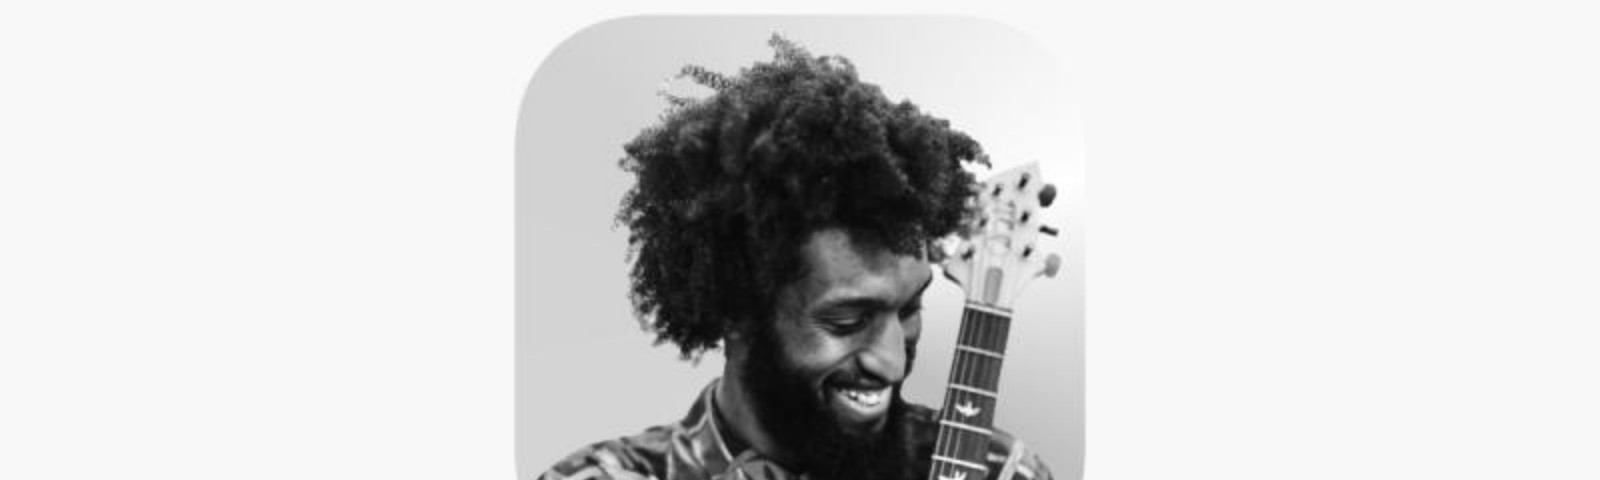 the Clubhouse app icon is a picture of a Black man with a beard and curly hair. He's smiling and holding a guitar.